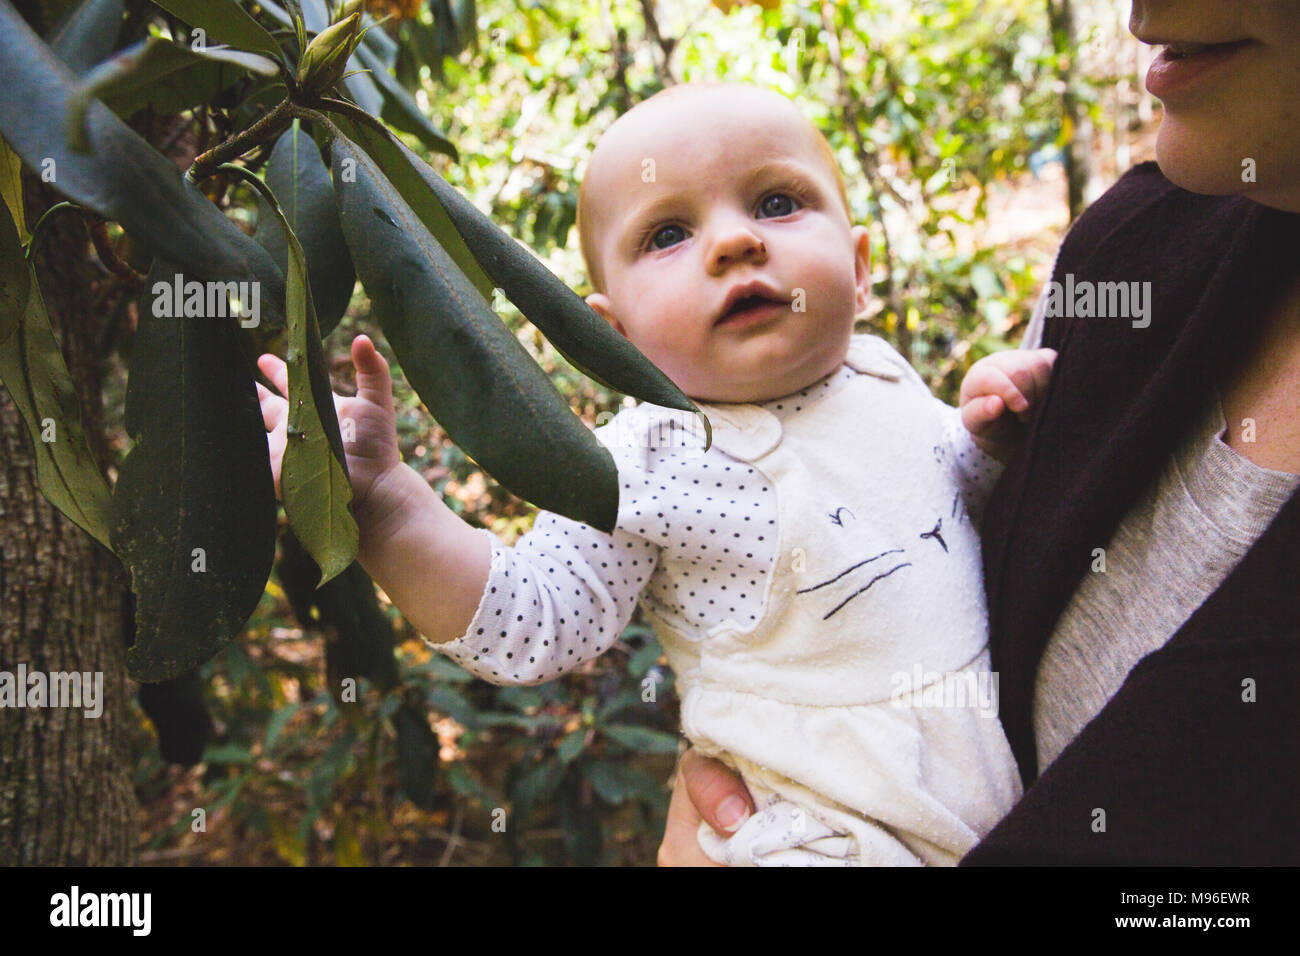 Baby being held next to rhododendron - Stock Image